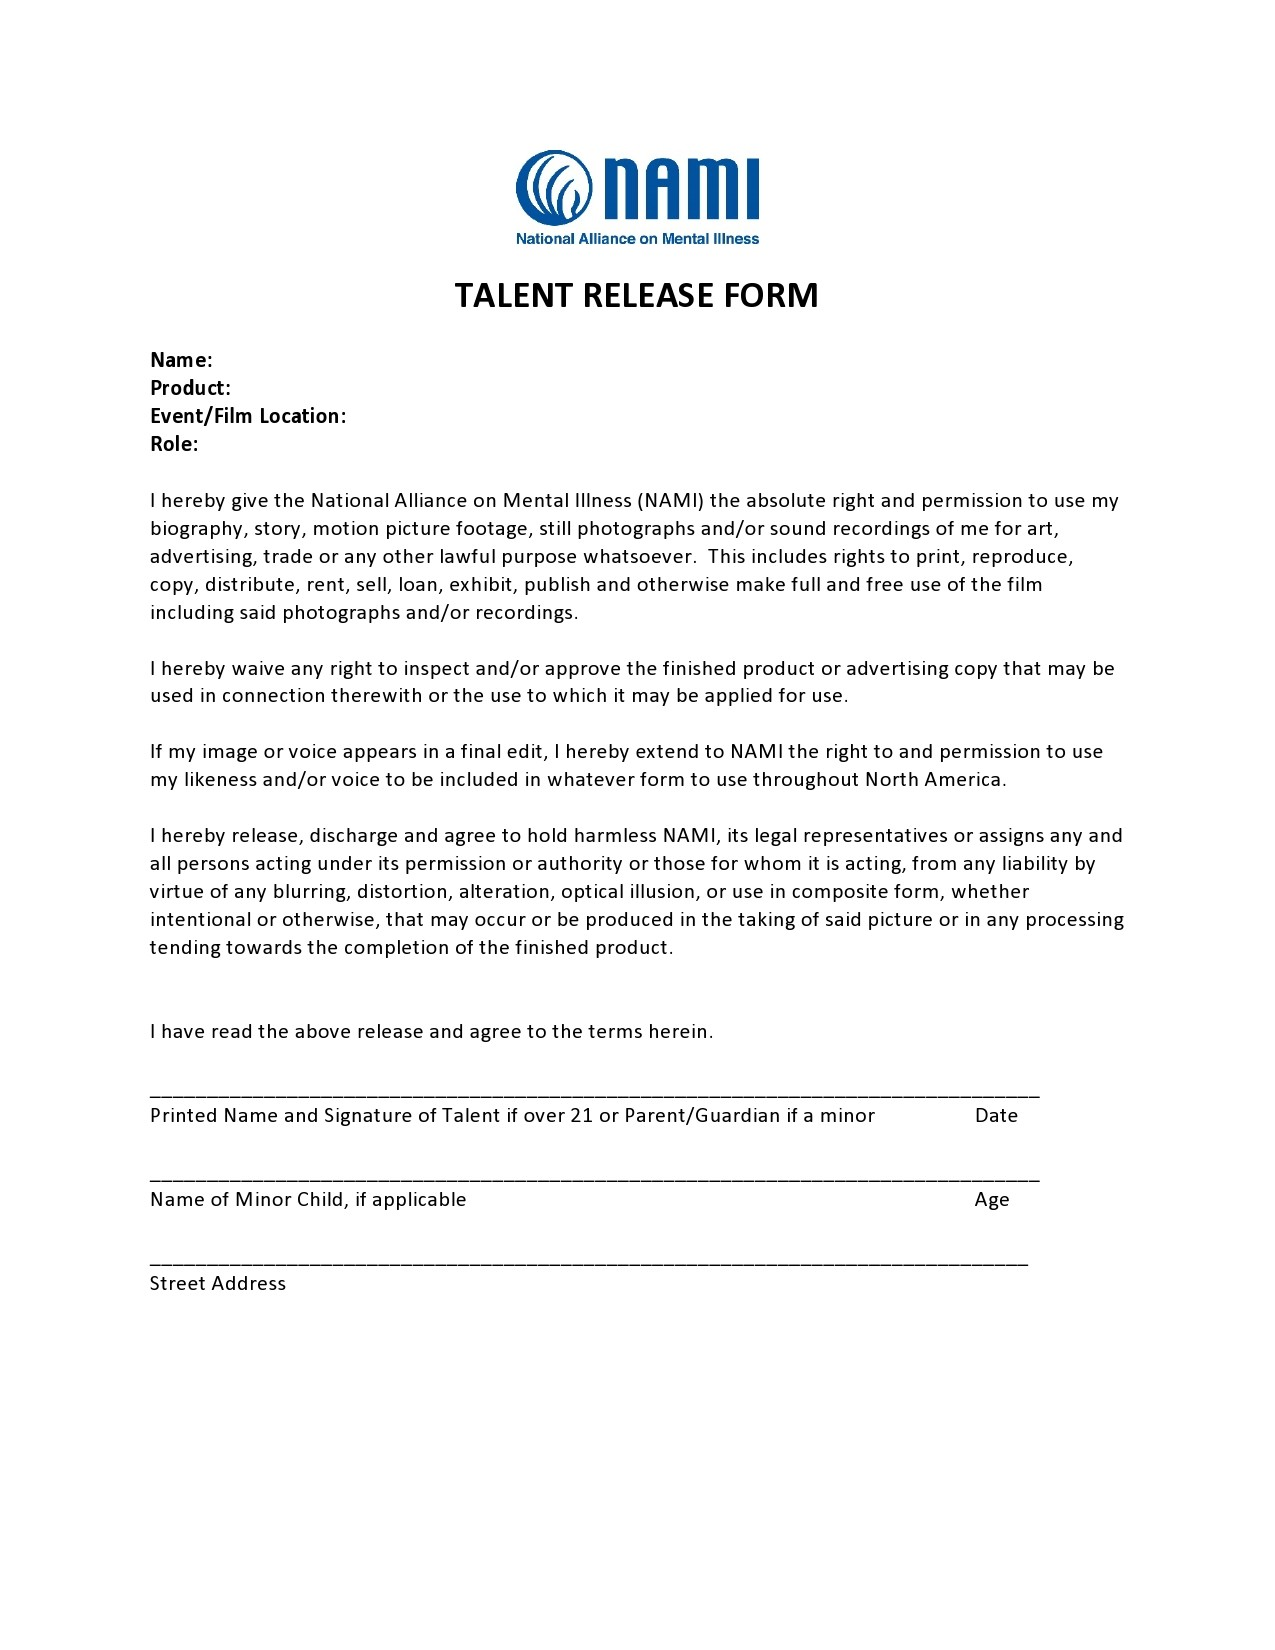 Free talent release form 08